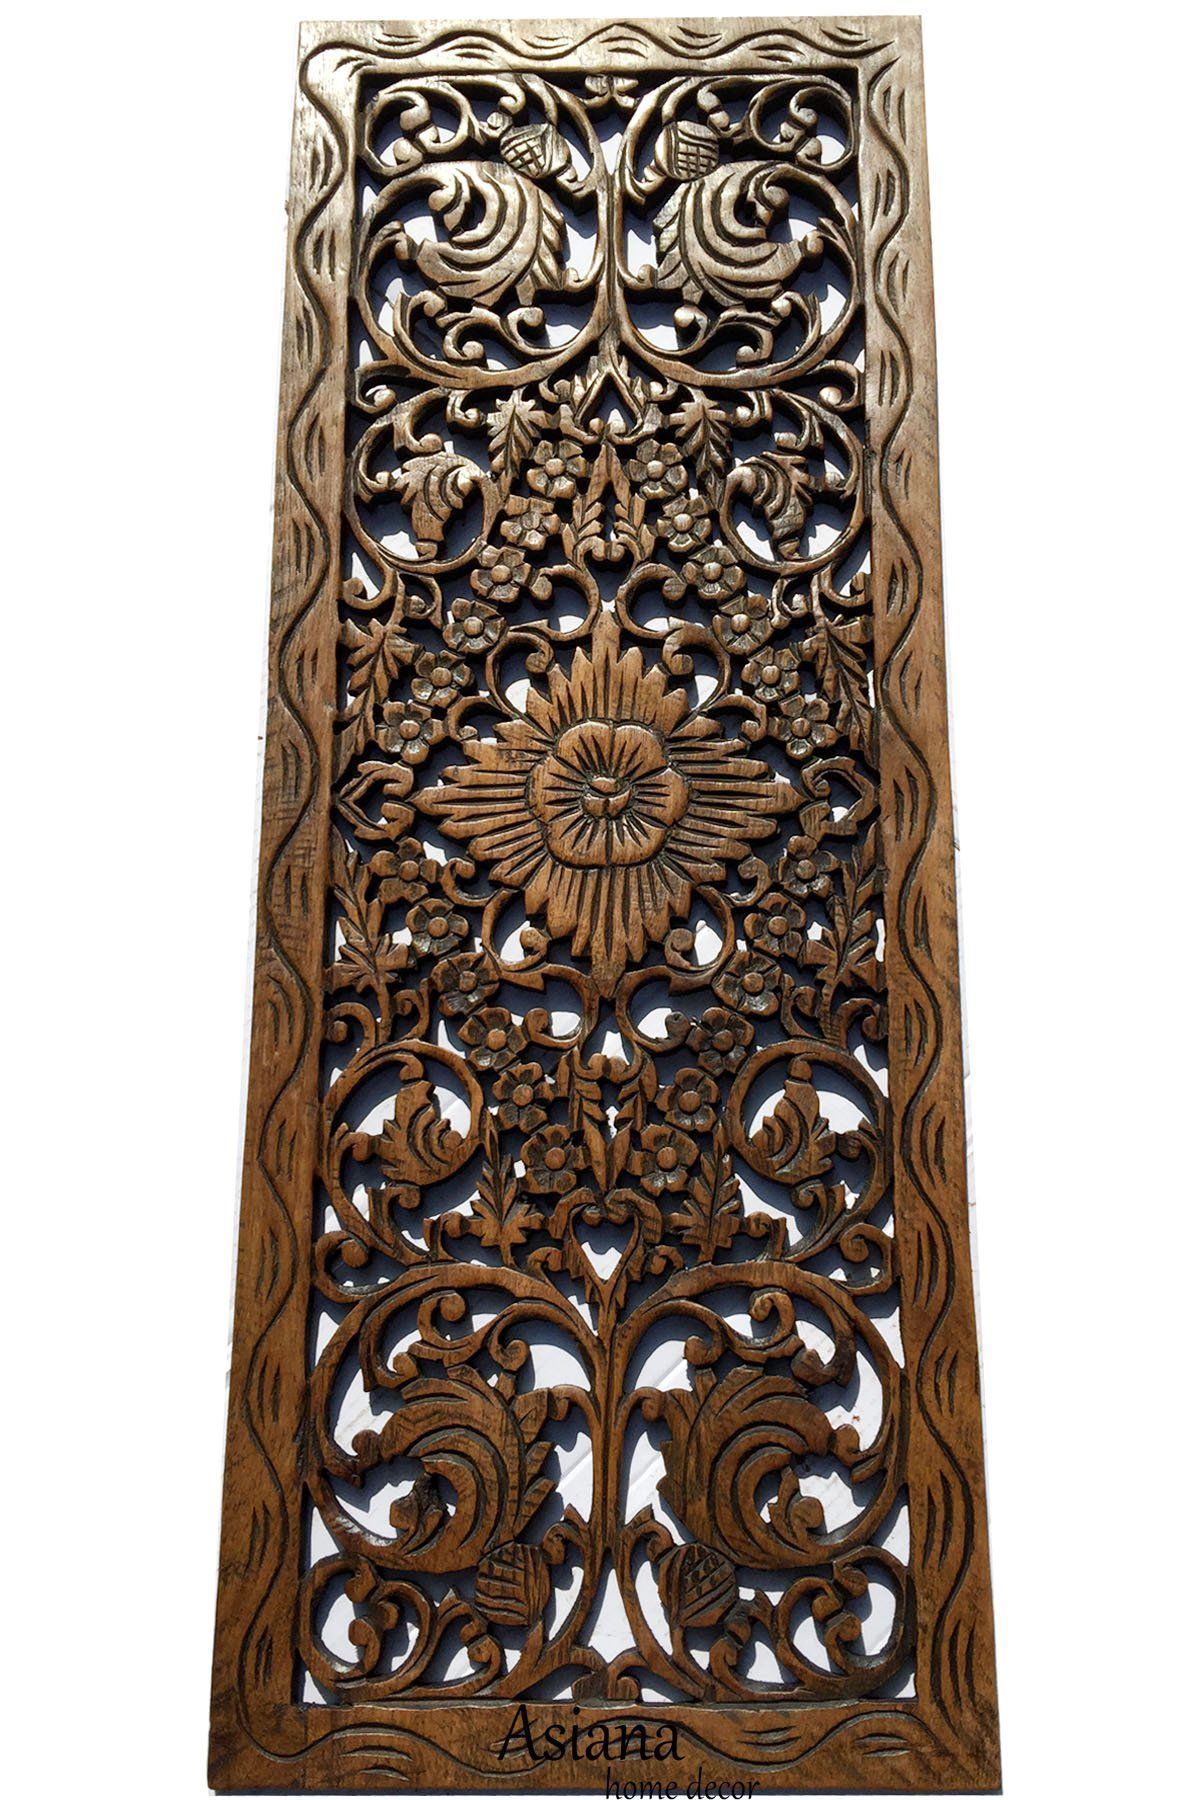 Fl Wood Carved Wall Panel Decoration Asian Home Decor Hanging Large Plaque 35 5 X13 X0 Asianhomedecor